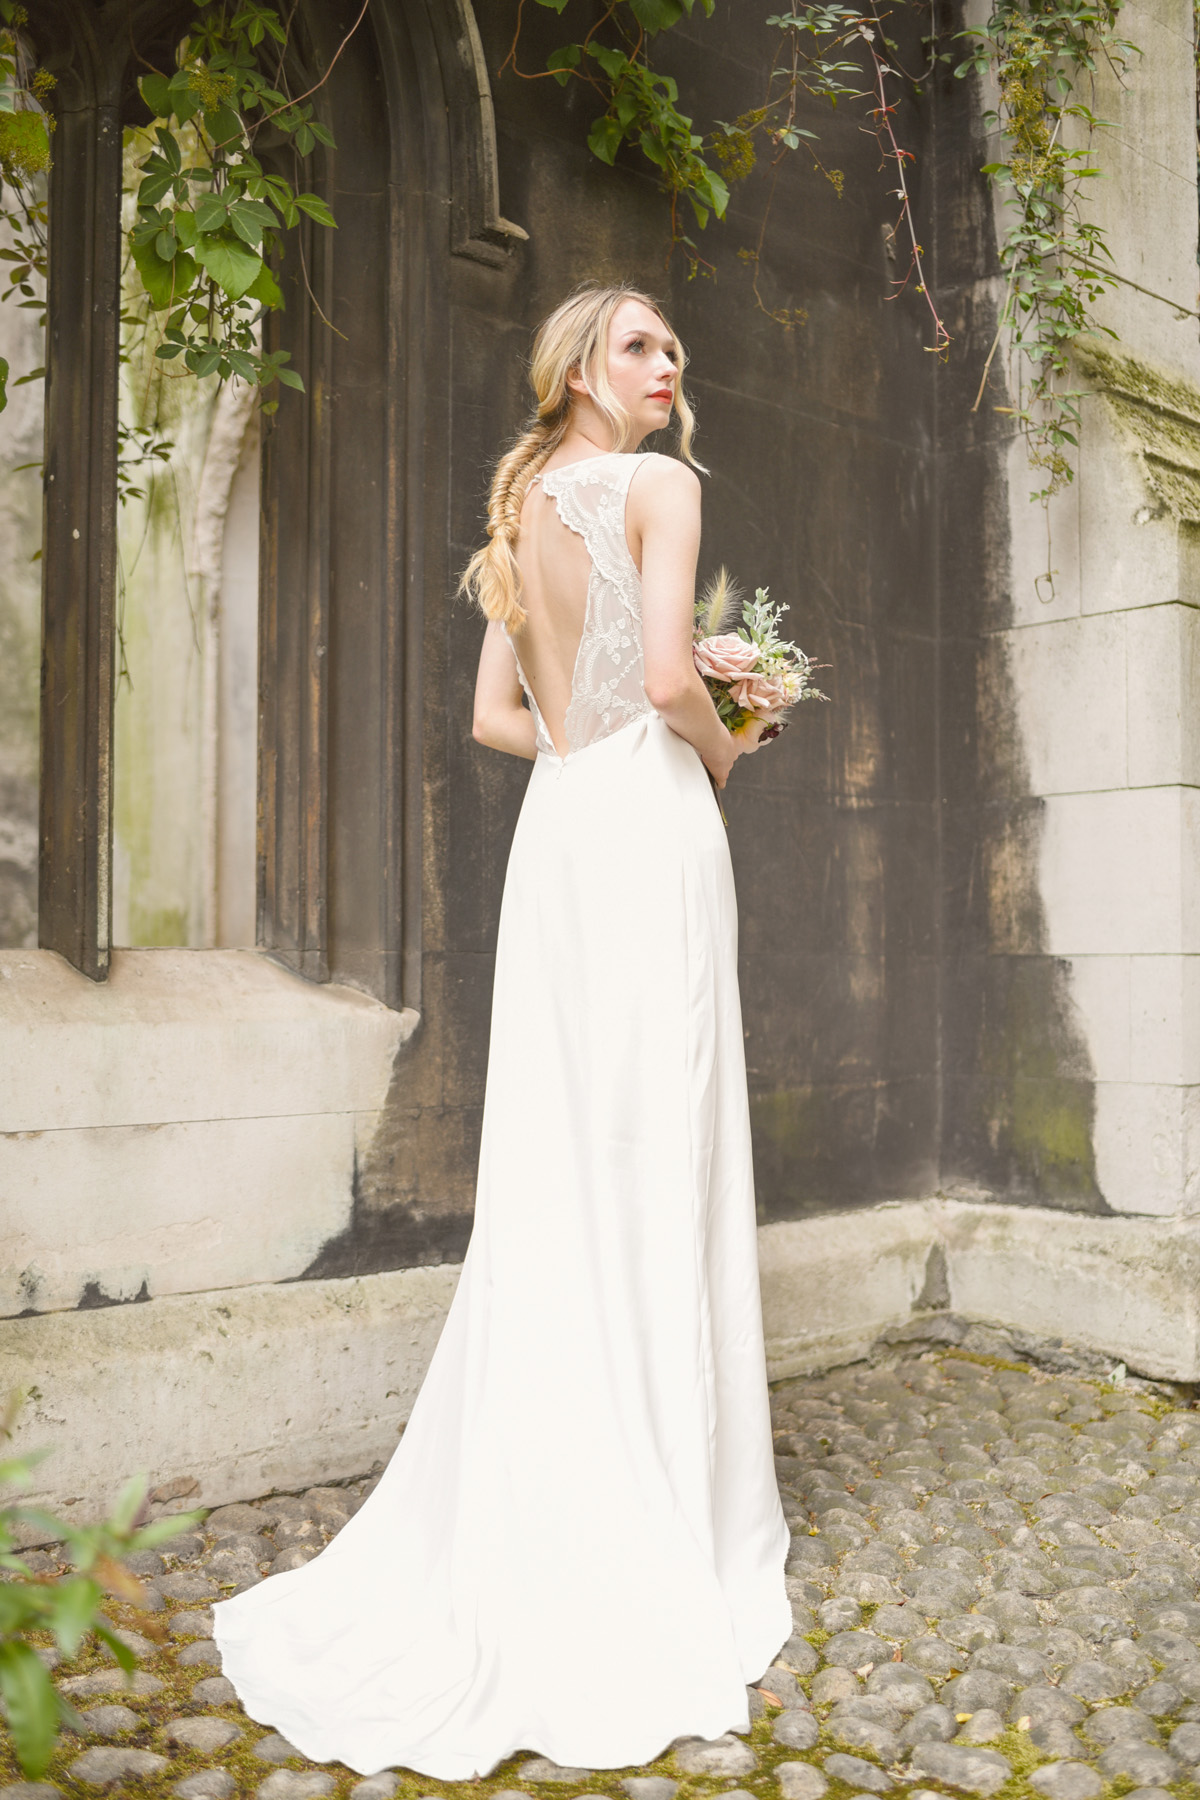 b5ba0e8a240a Indiebride London: Sustainable + Ethical Wedding Dresses | Love My ...